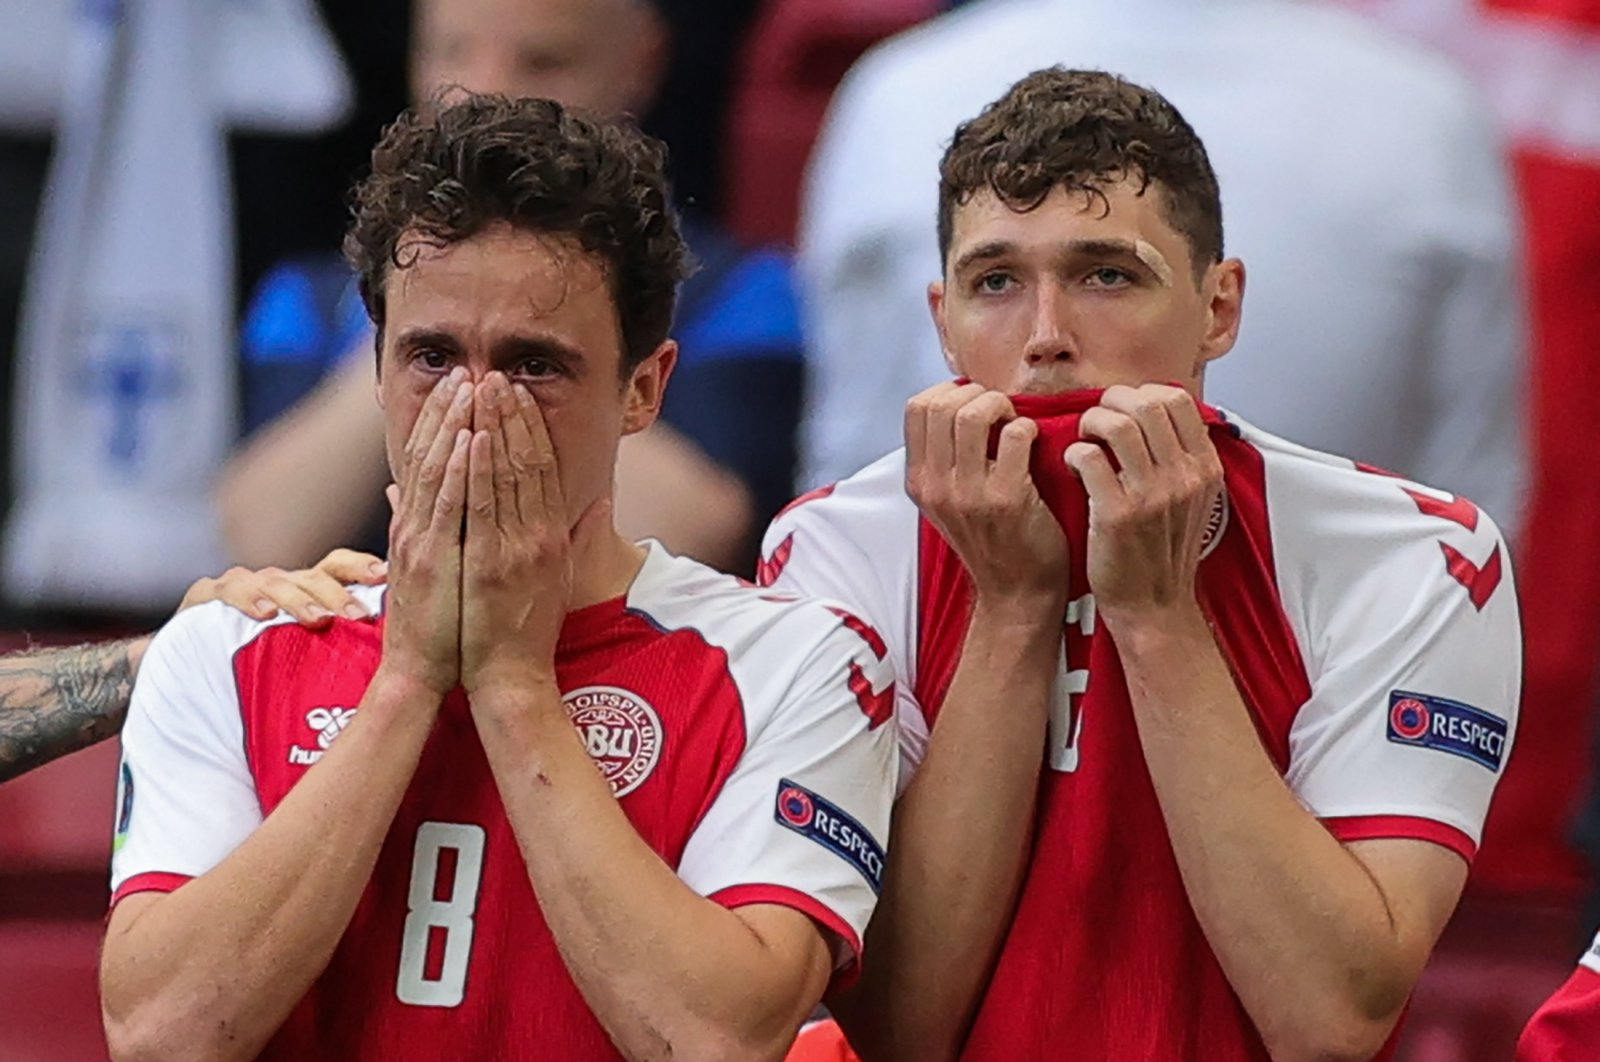 Denmark's midfielder Thomas Delaney and defender Andreas Christensen react as paramedics attend to Denmark's midfielder Christian Eriksen after he collapsed on the pitch during the UEFA EURO 2020 Group B match against Finland at the Parken Stadium, Copenhagen, Denmark, June 12, 2021. (AFP Photo)